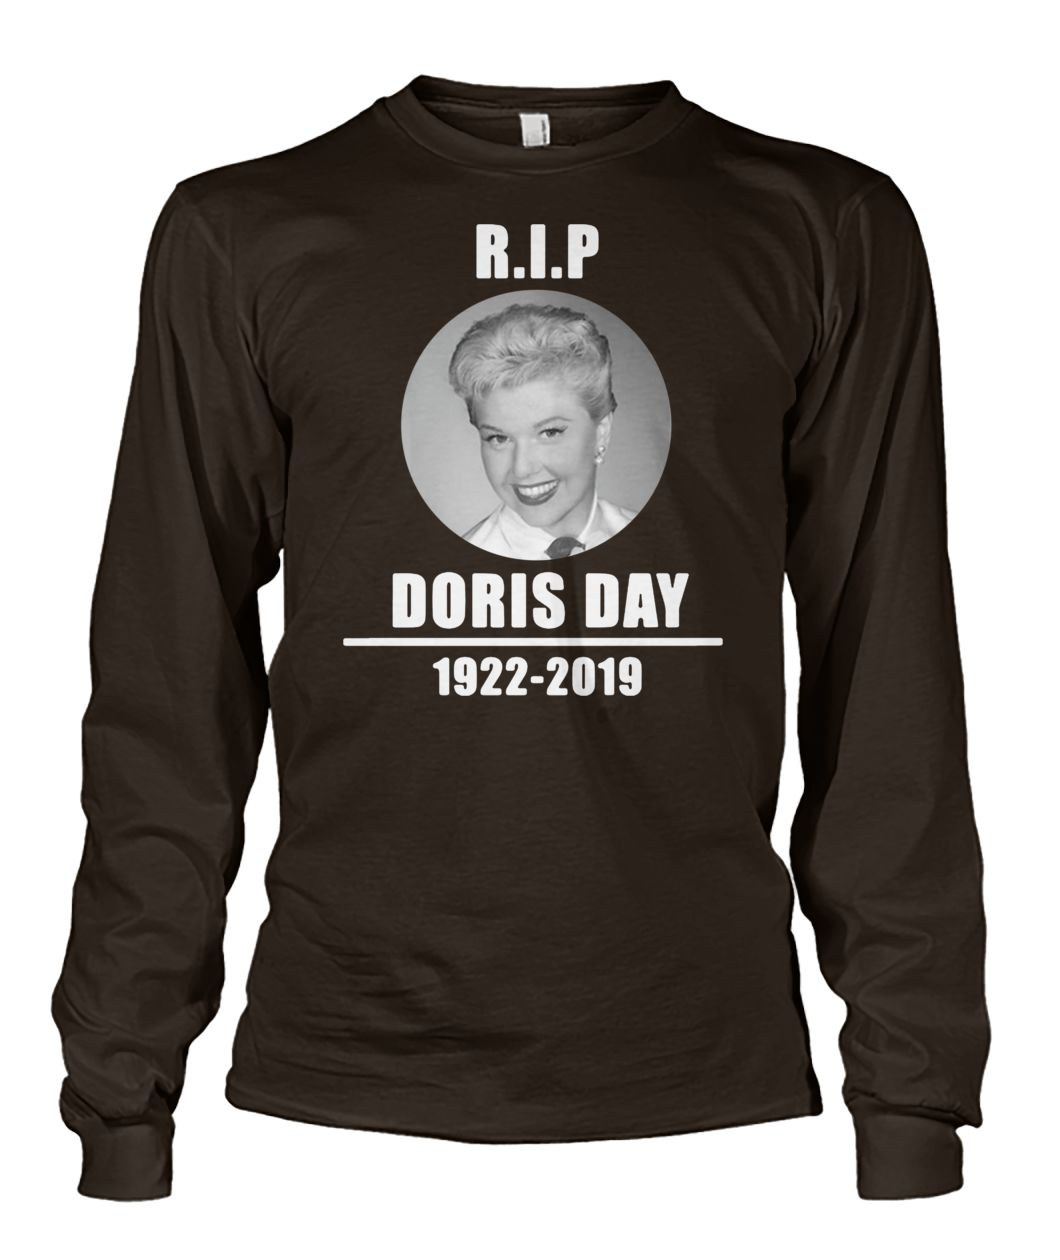 RIP doris day 1922 2019 unisex long sleeve